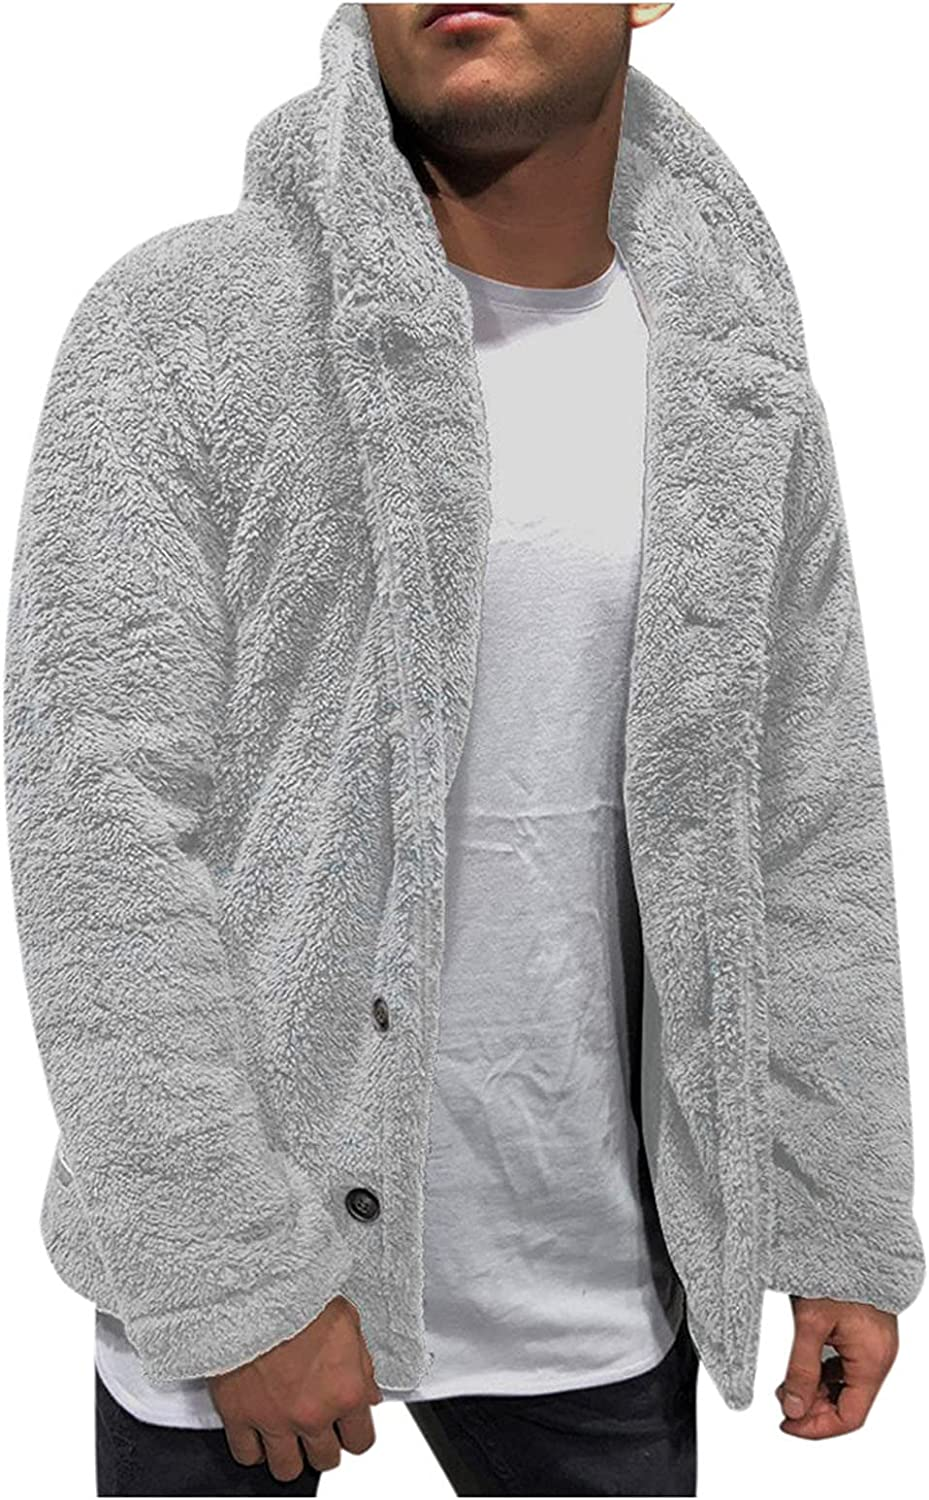 XXBR Fleece Cardigan Sweater for Mens, Long Sleeve Hooded Fluffy Jackets Double-sided Jumper Cardigans Casual Outerwear